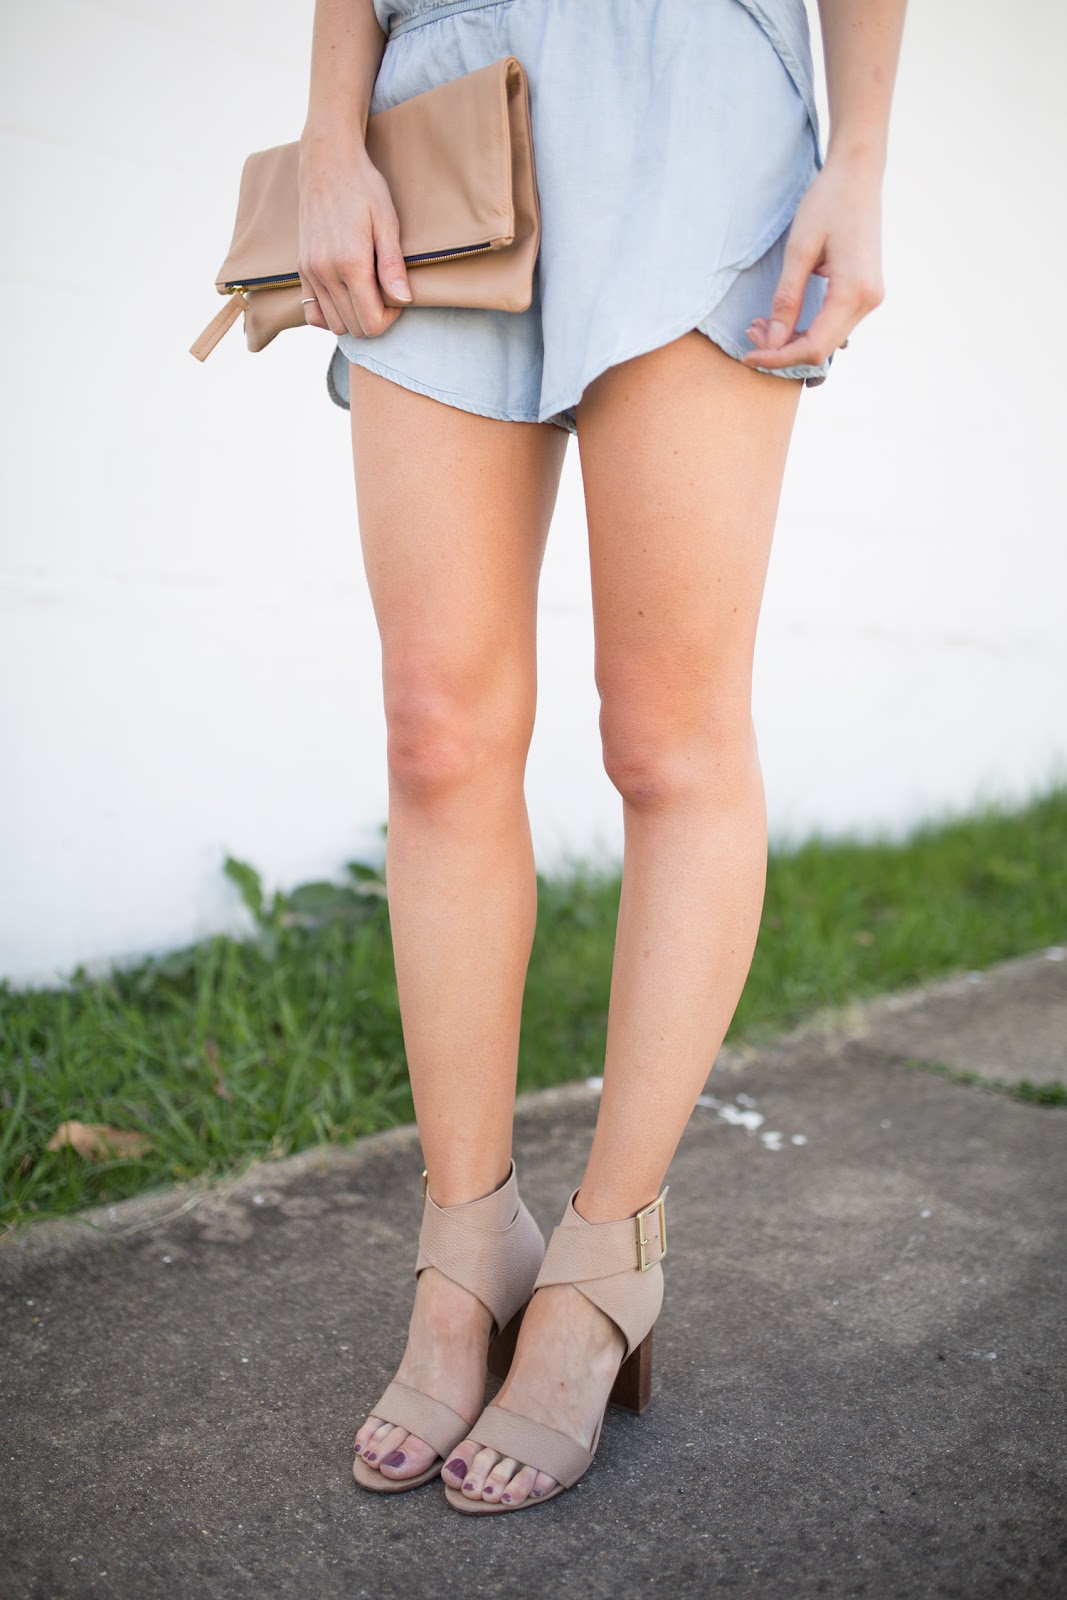 Chambray romper + nude heeled sandals